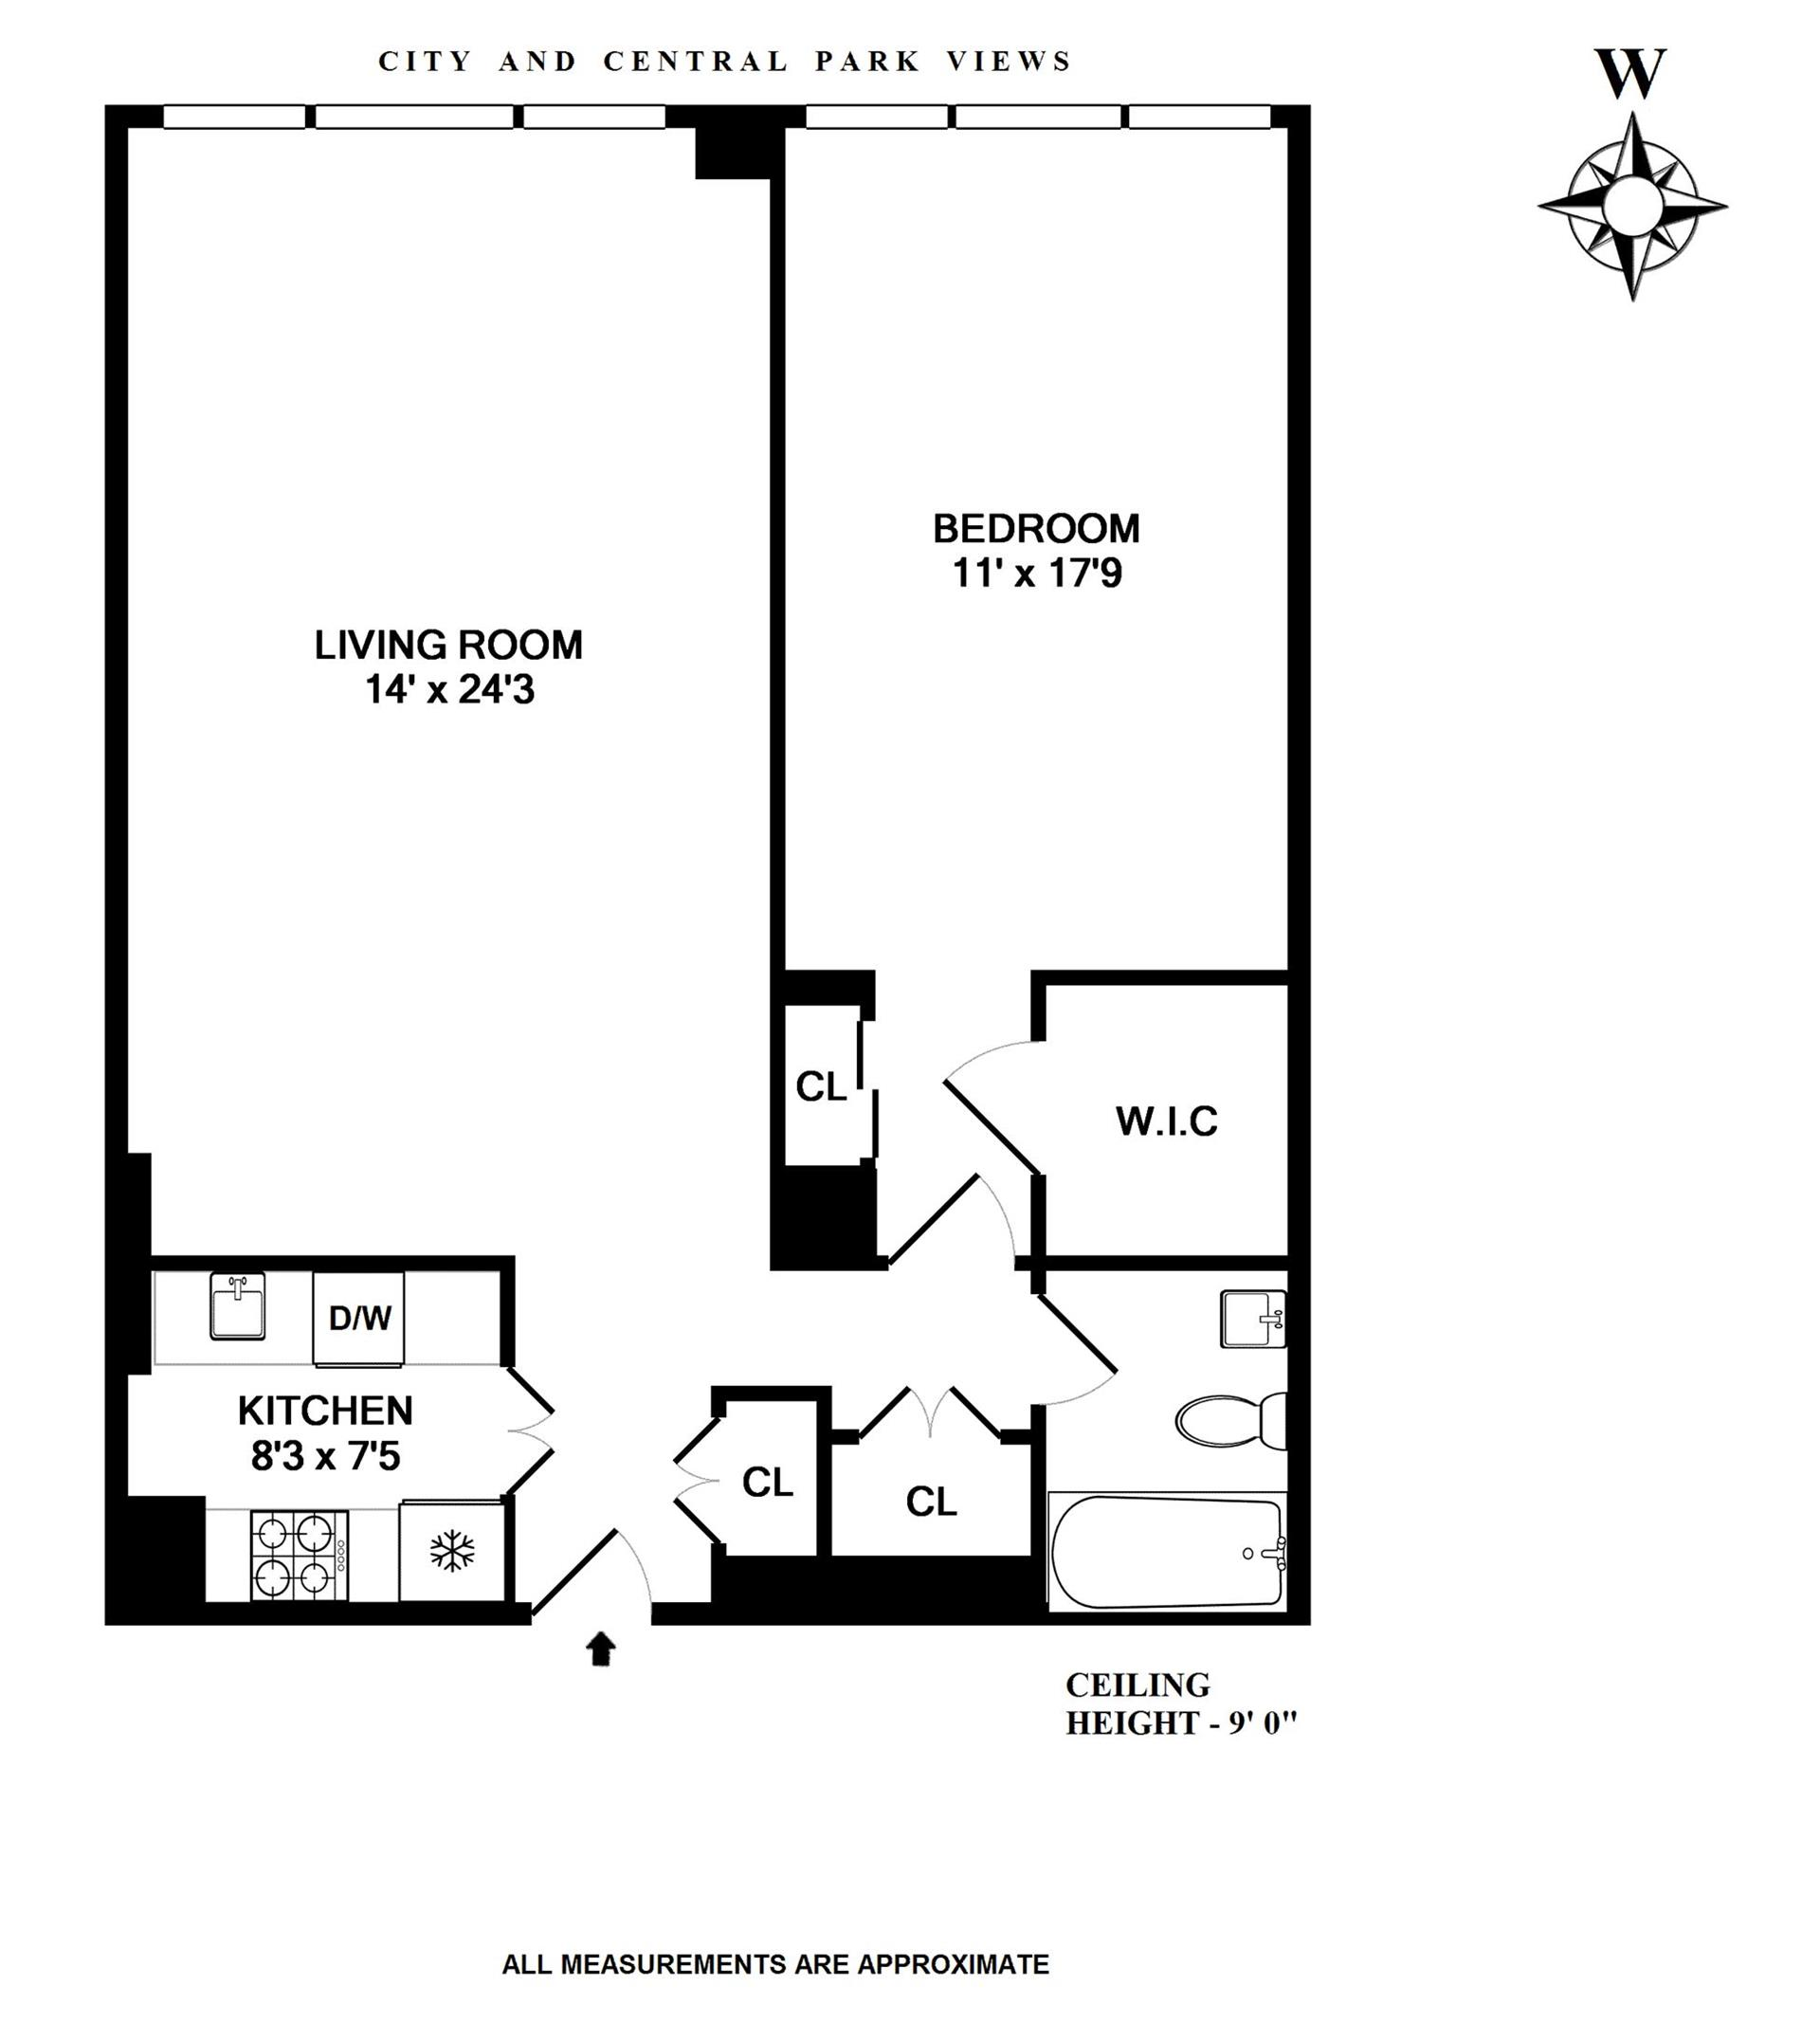 Floor plan of 300 East 59th St, PH3604 - Upper East Side, New York